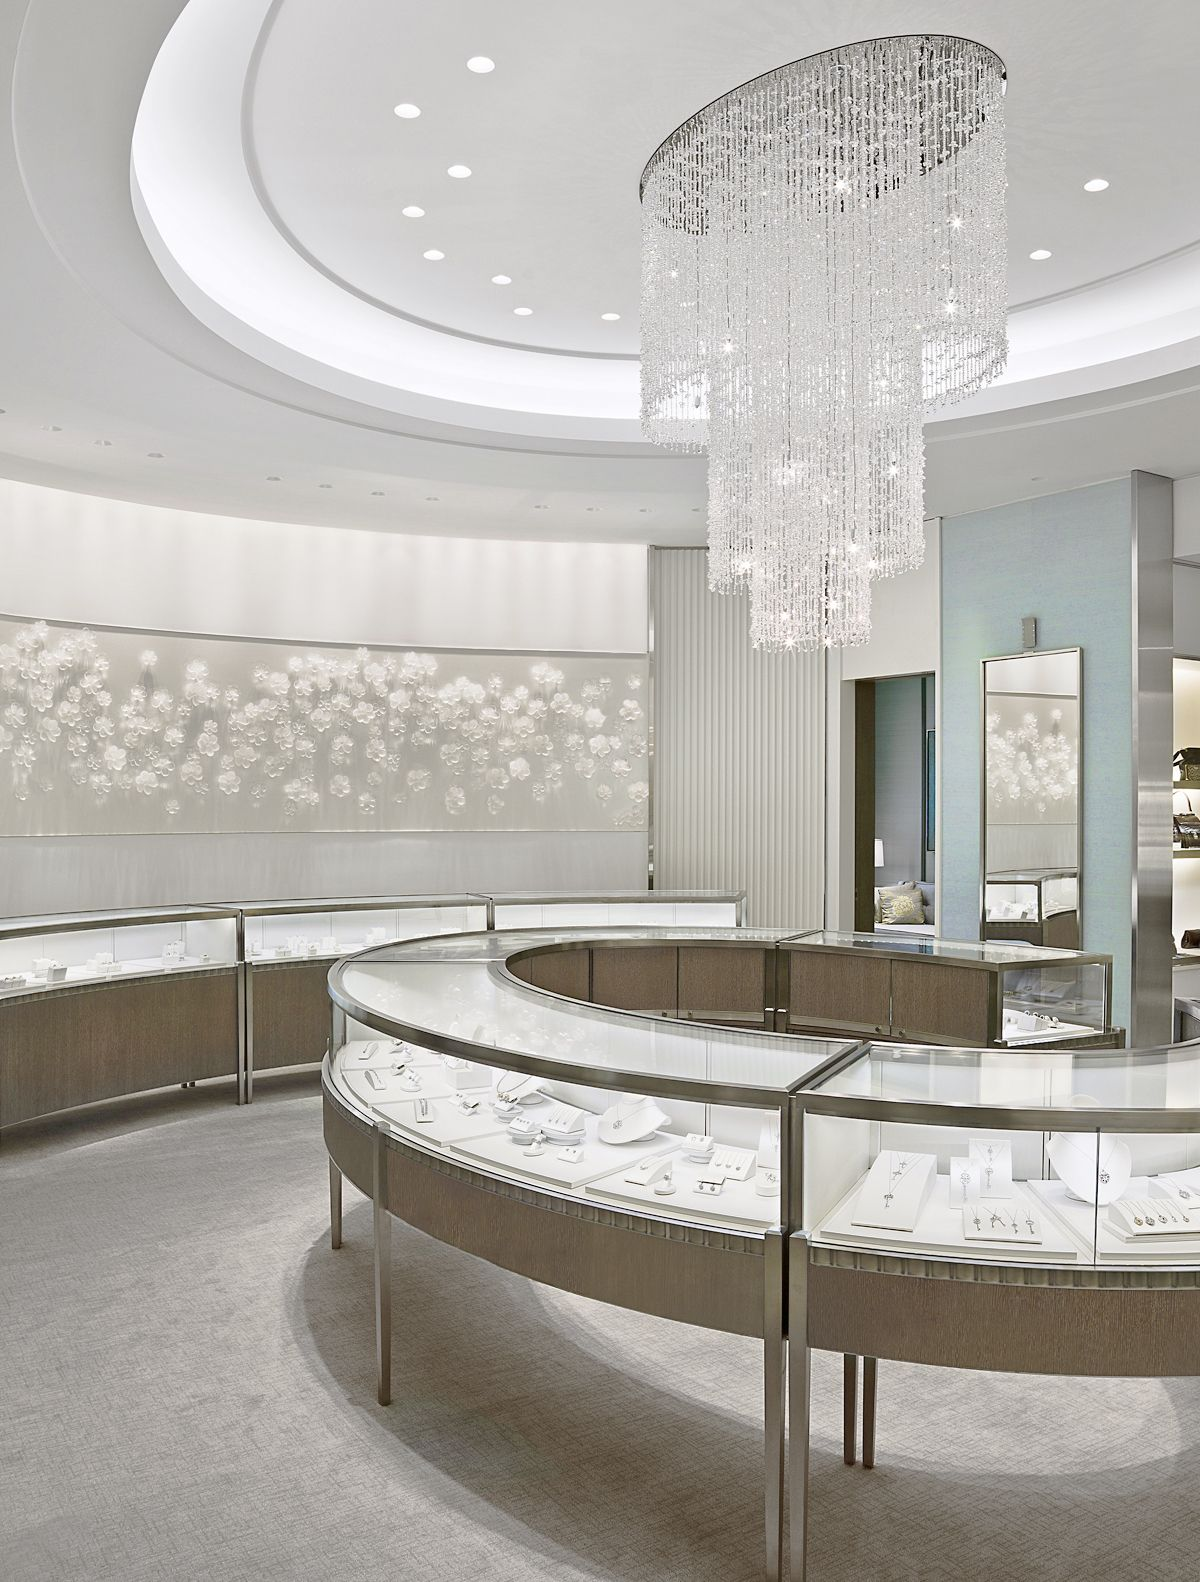 Tiffany & Co. Manhassett, New York. RETAIL PROJECTS in